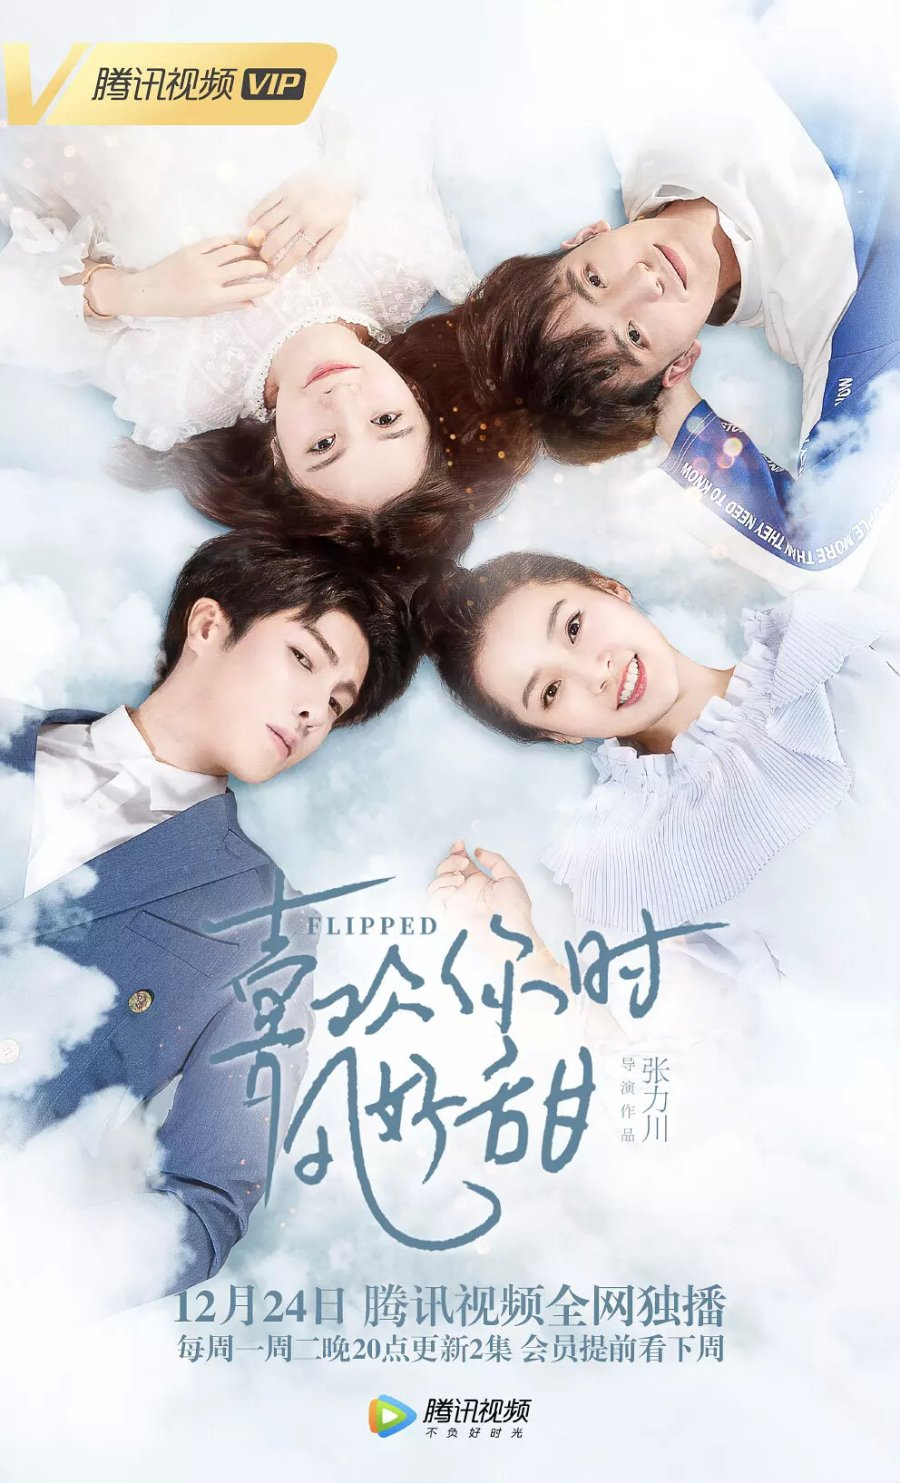 Flipped promotional banner, two women and two men lie next to each other in snow/clouds